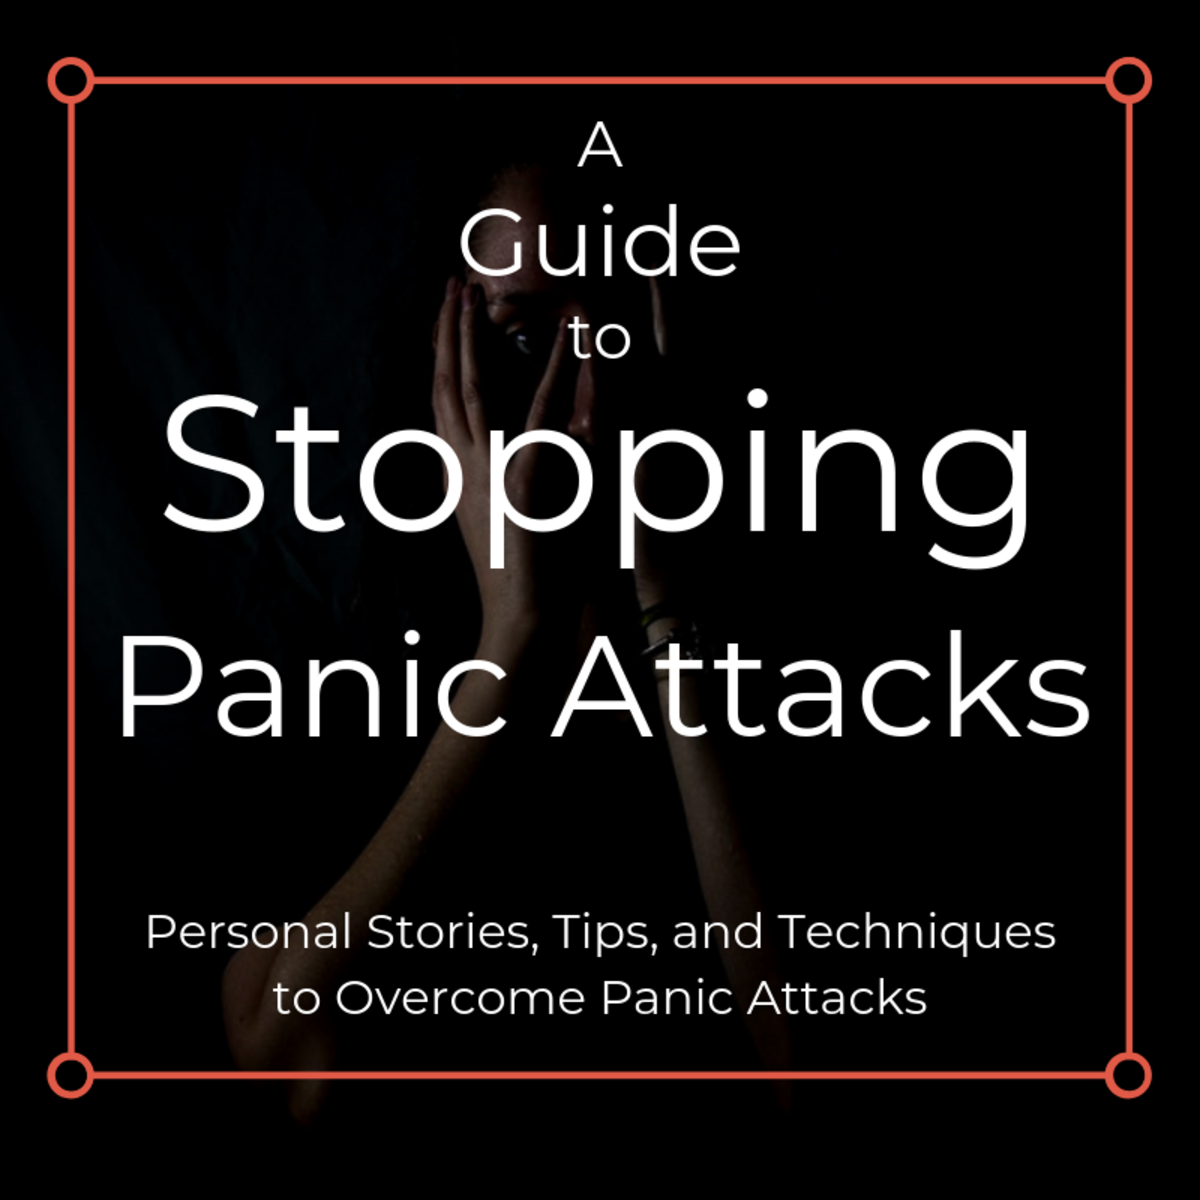 I want to share my personal experience with panic attacks and how I learned to overcome them through many years and trial and error.